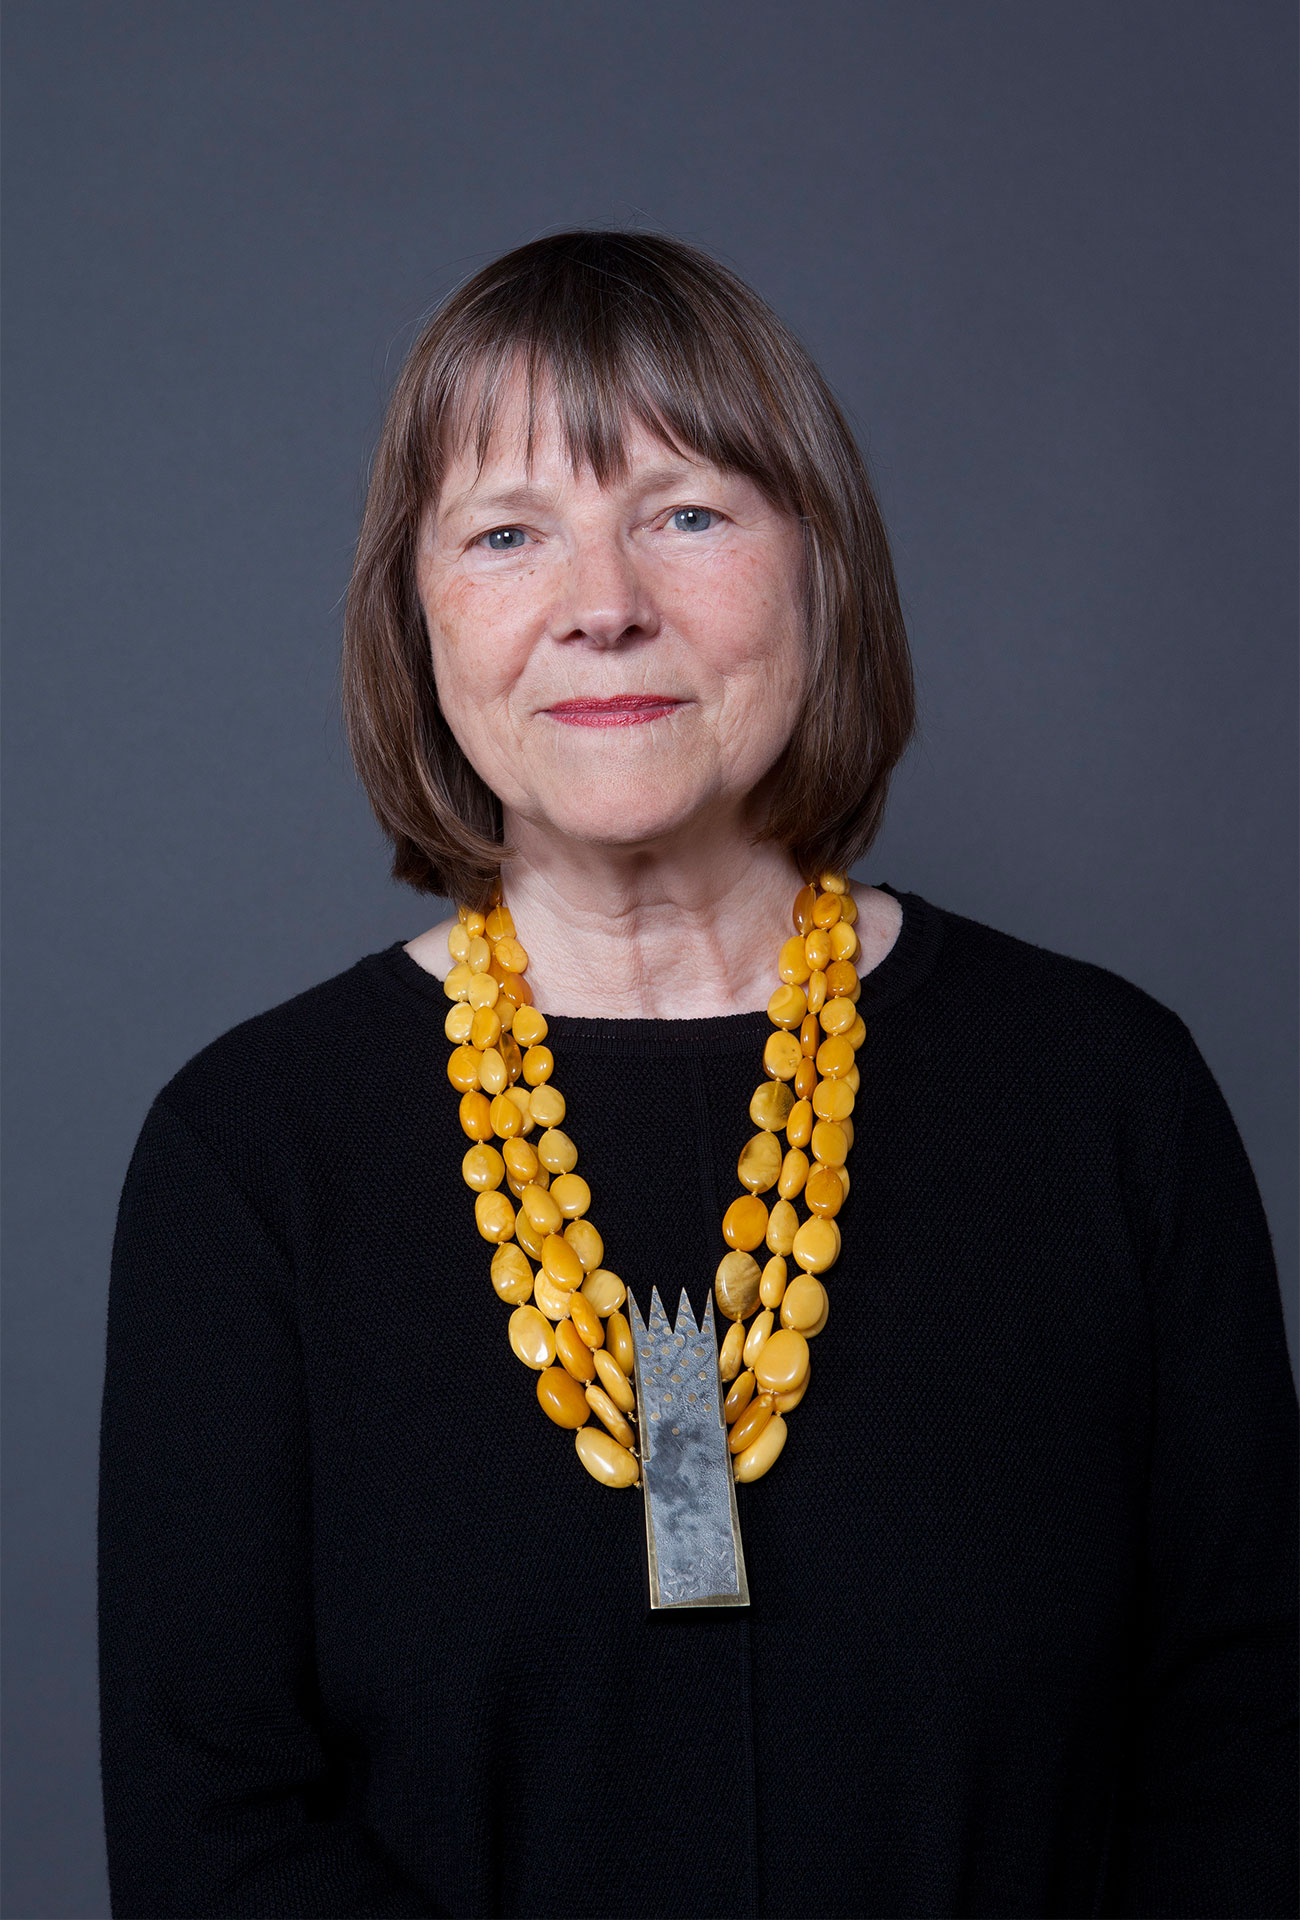 Gabriele Heinz with necklace